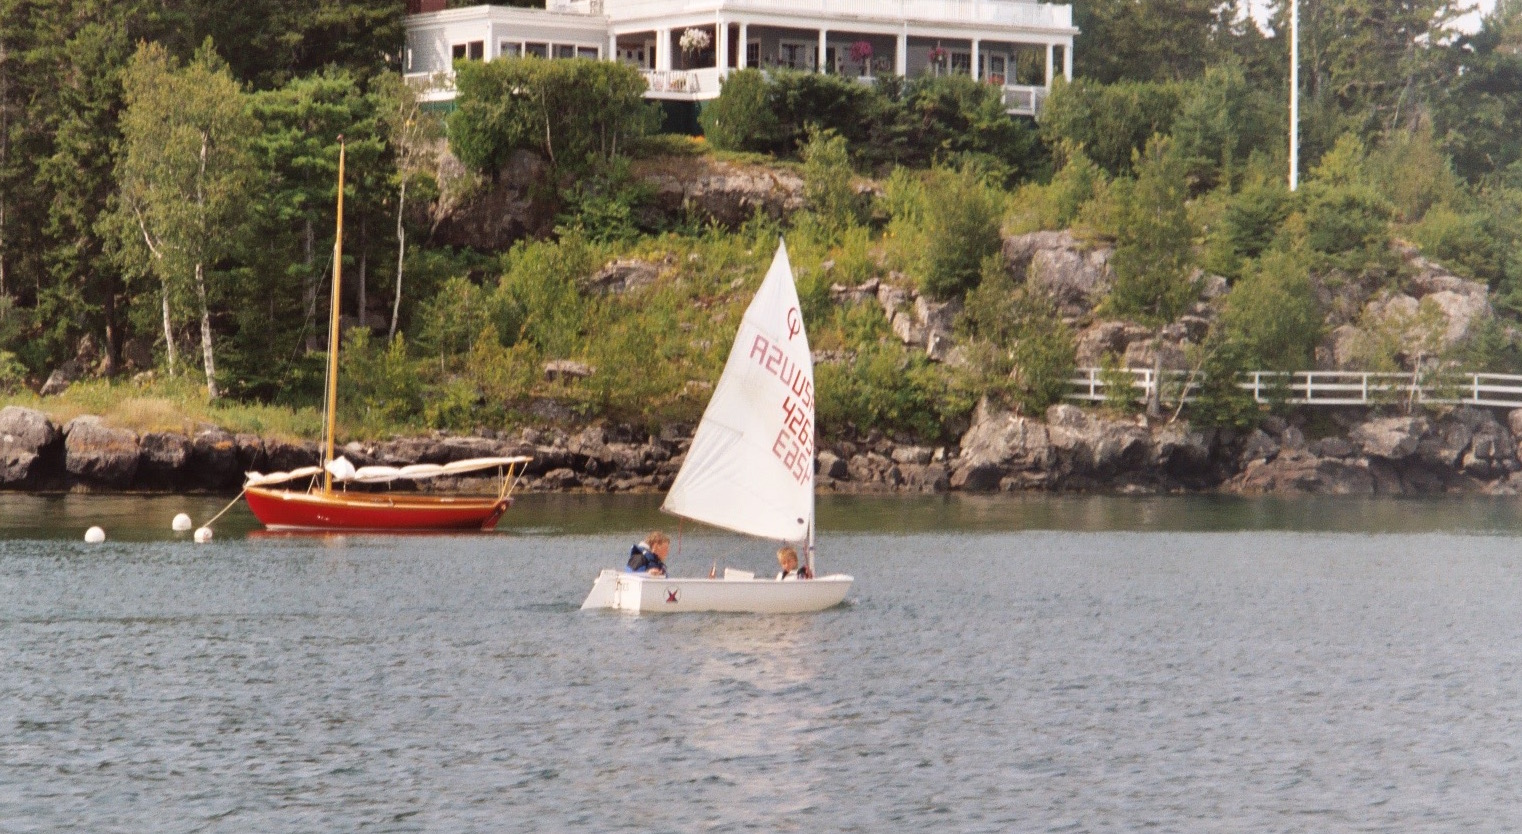 Jakob sailing in the bow of an Optimist